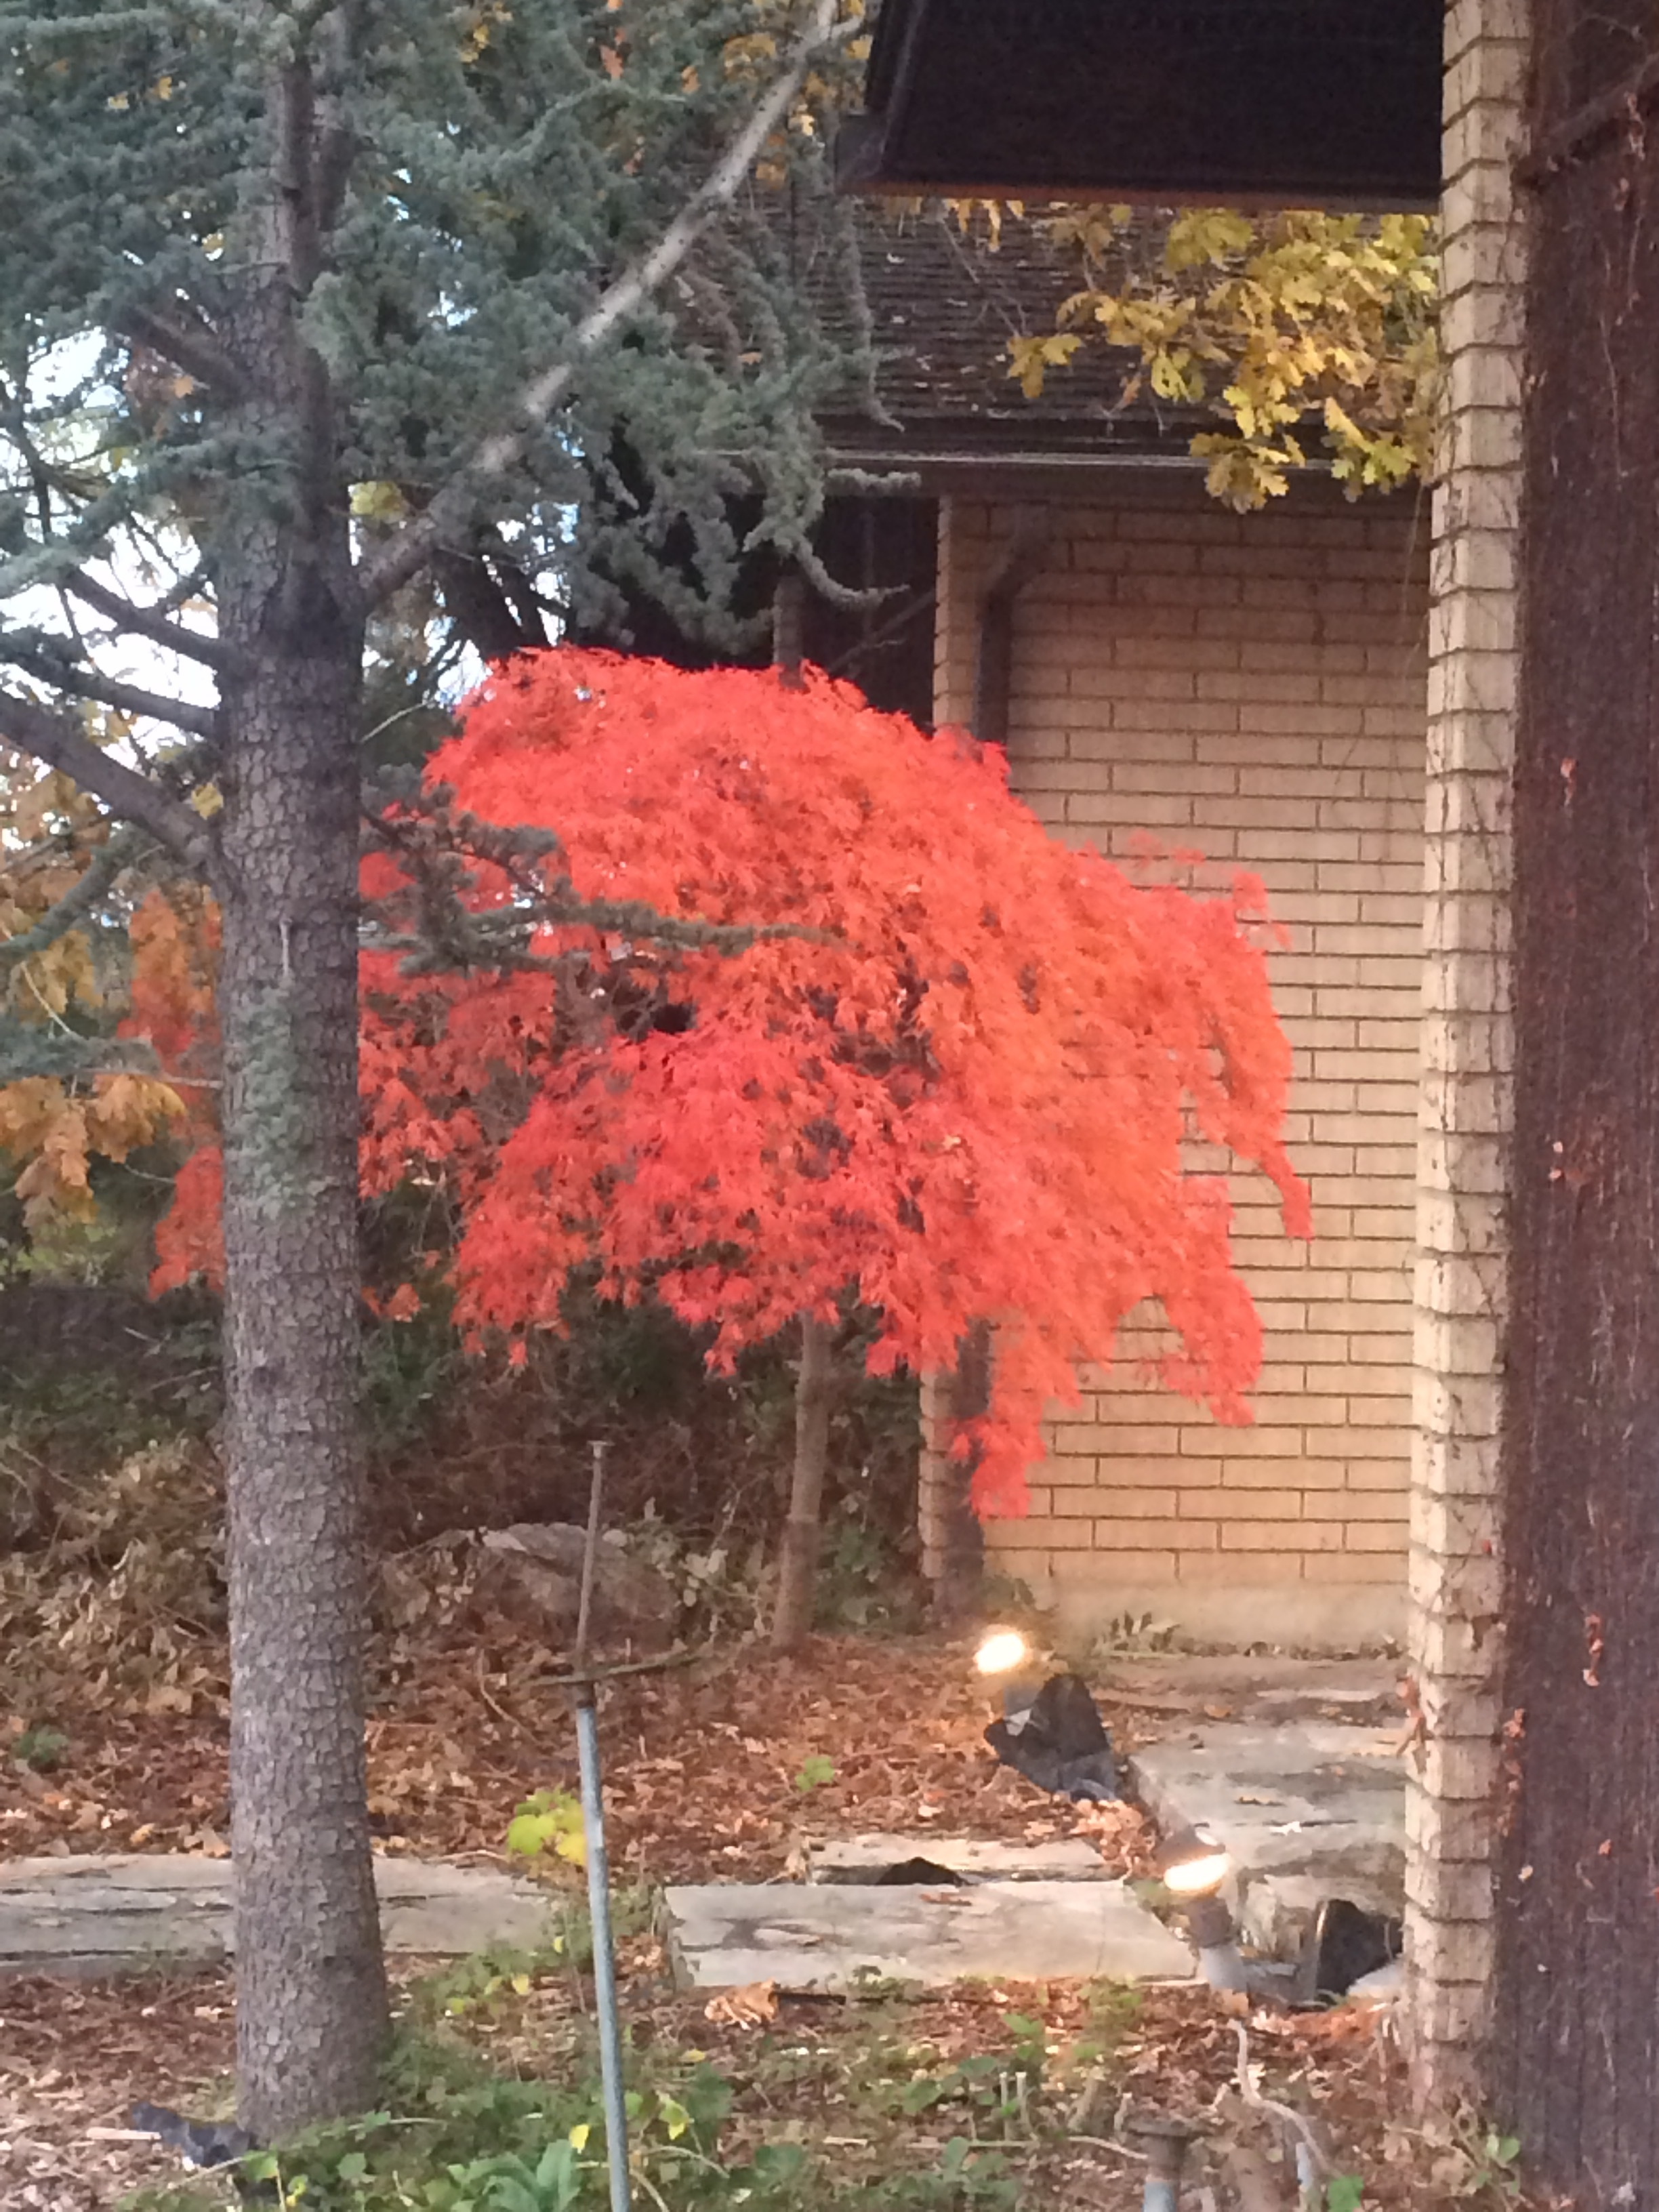 One of the many beautiful Japanese maples that had been hidden.